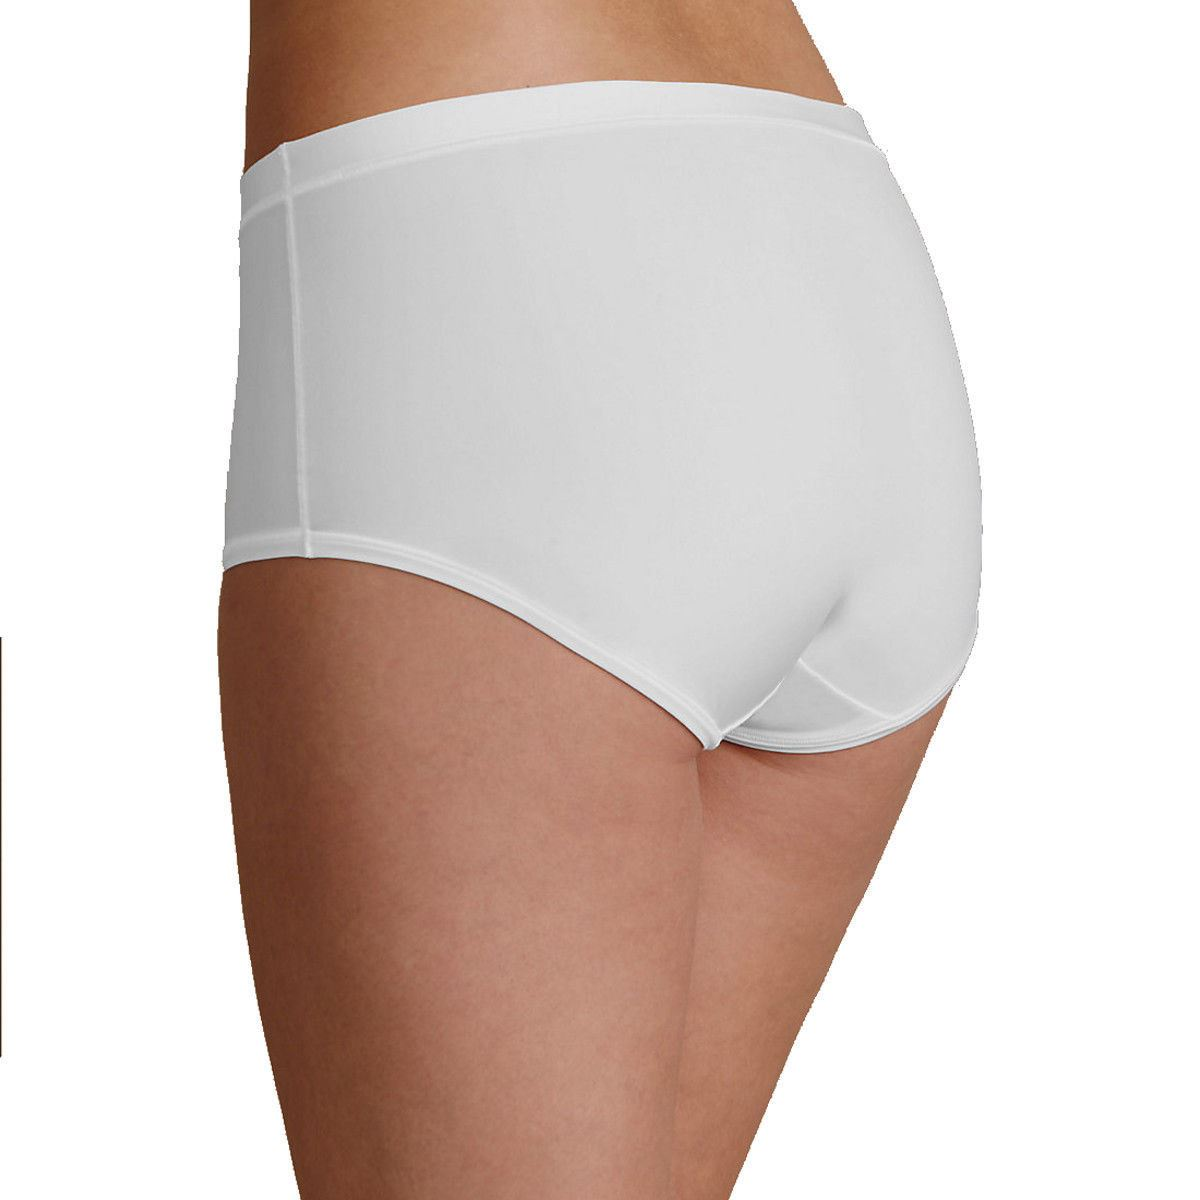 EX-M-amp-S-Ultimate-Comfort-Flexifit-4-Way-Stretch-Midi-Knickers-in-White thumbnail 10